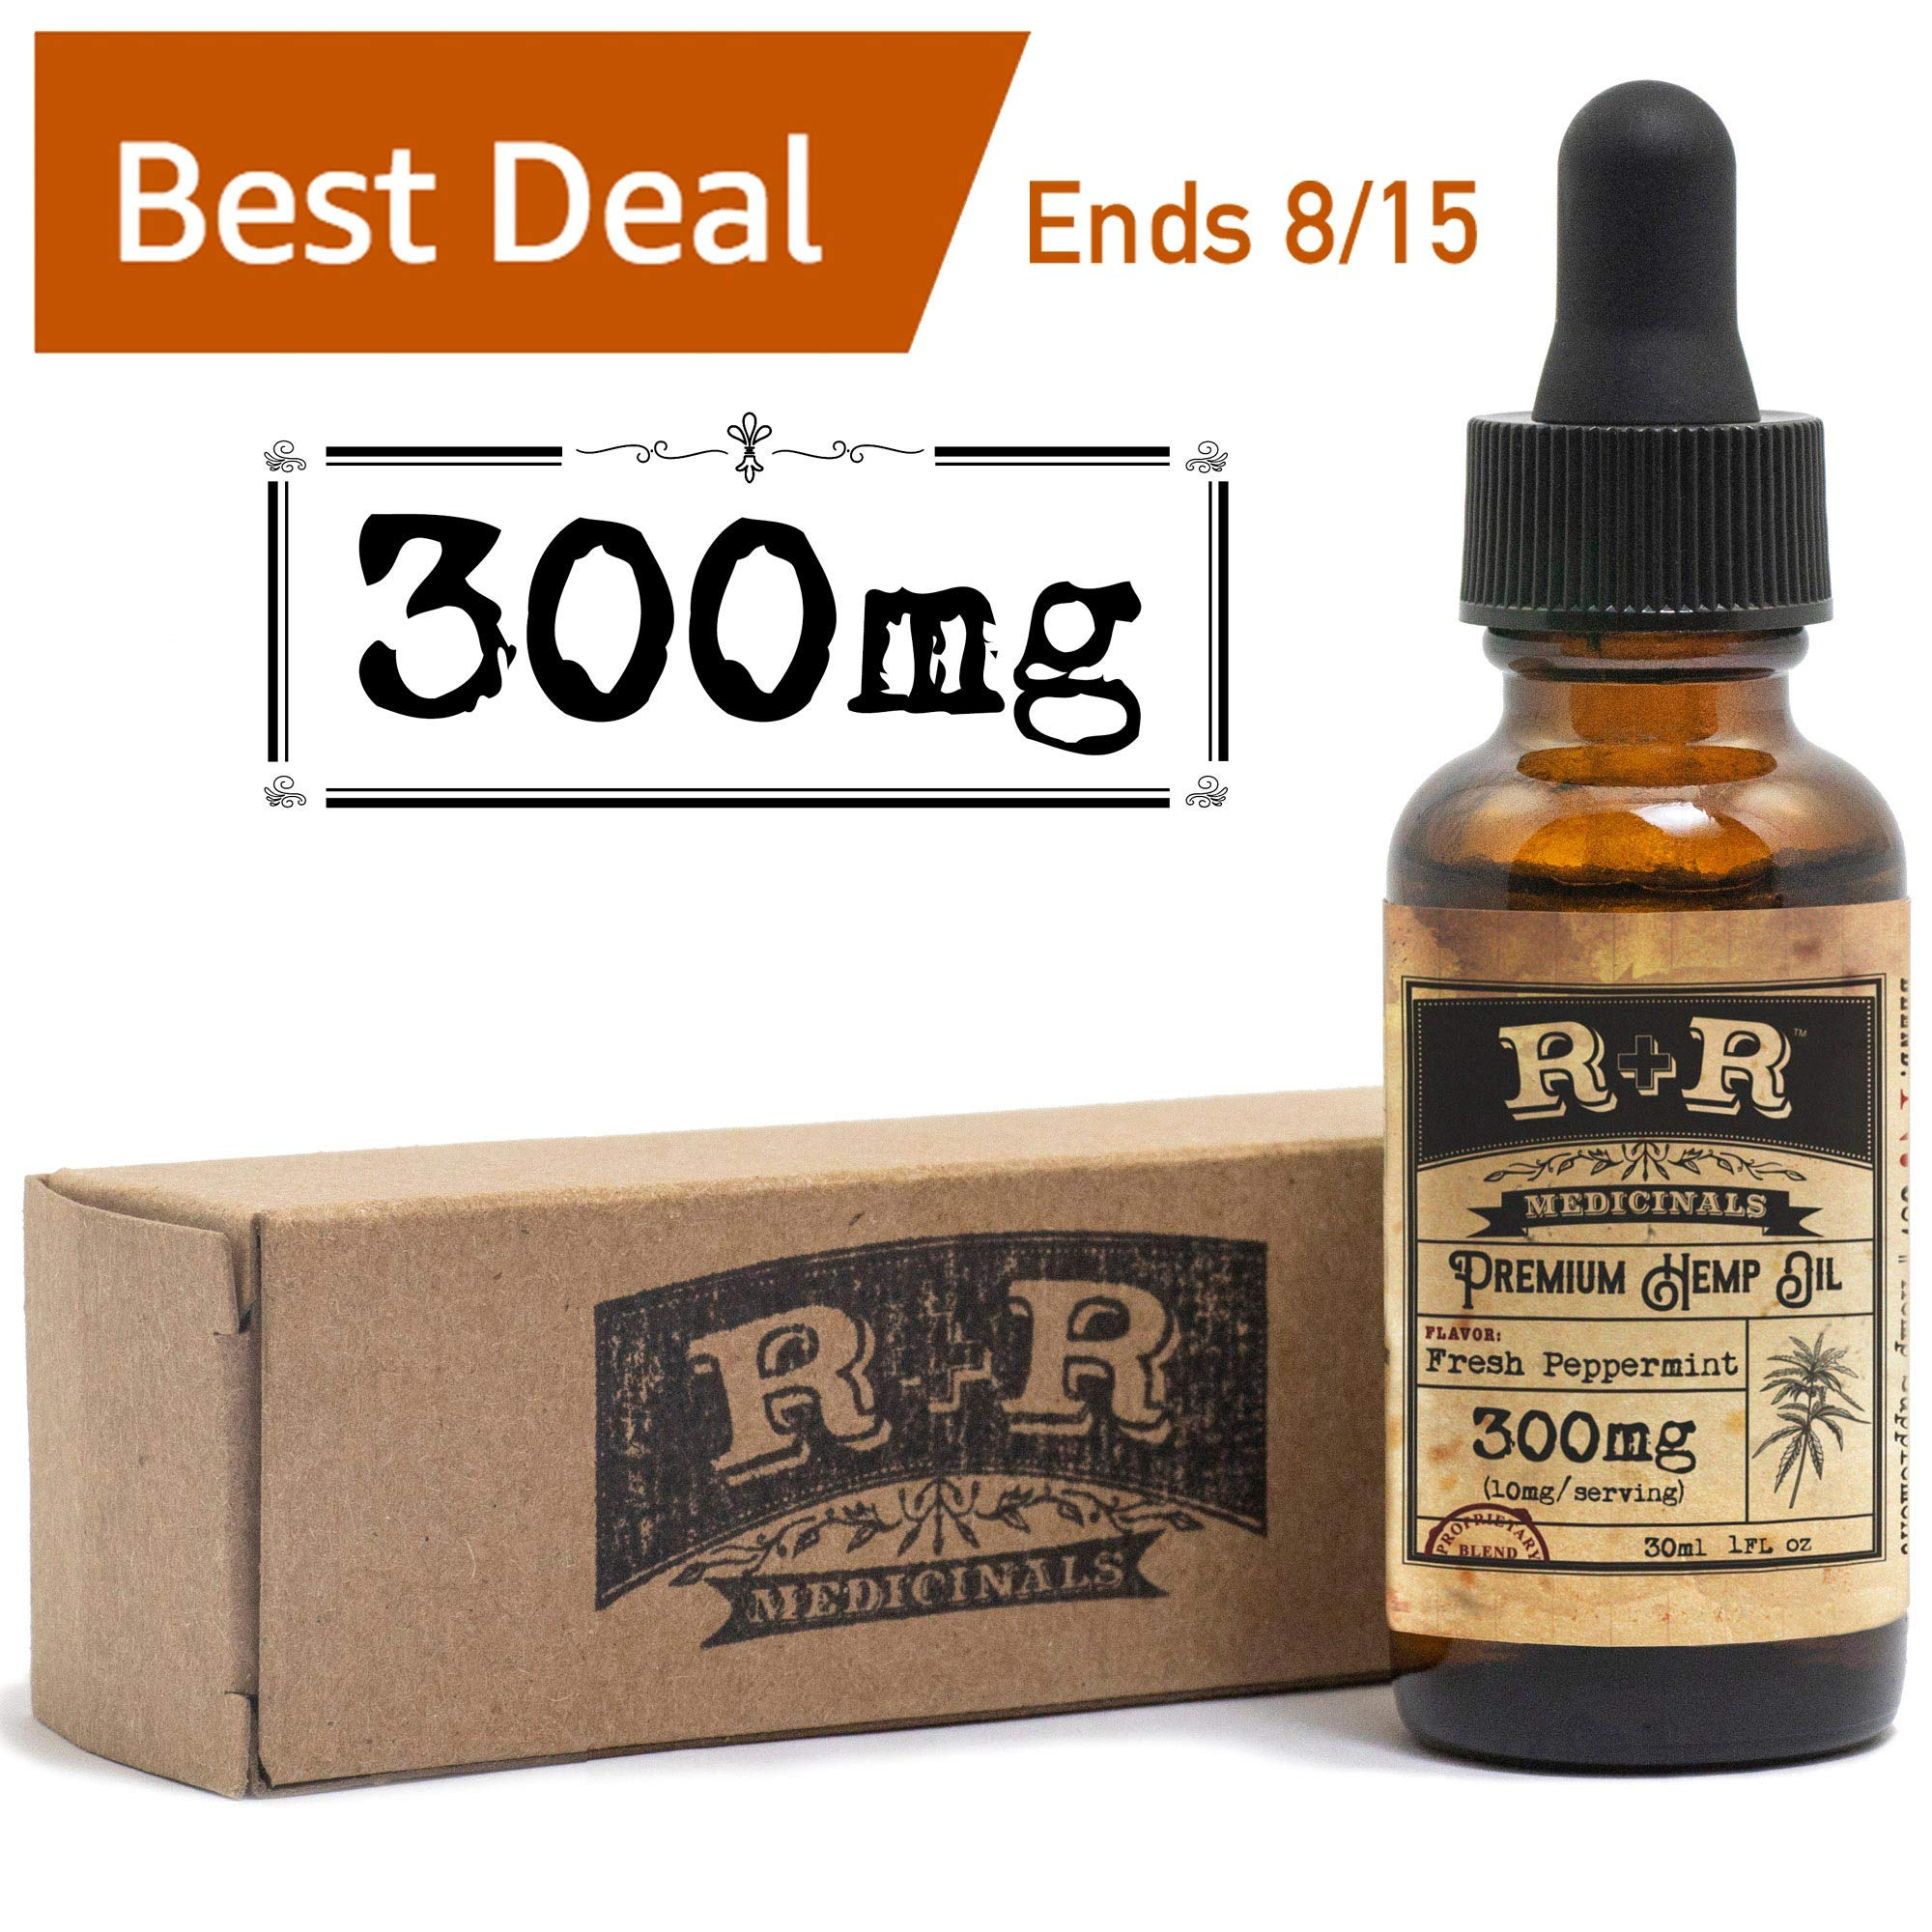 Best Hemp Oil for Pain Relief :: Hemp Oil for Anxiety, Stress Relief, Mood Support, Healthy Sleep Patterns, Skin Care (300mg) : R+R Medicinals